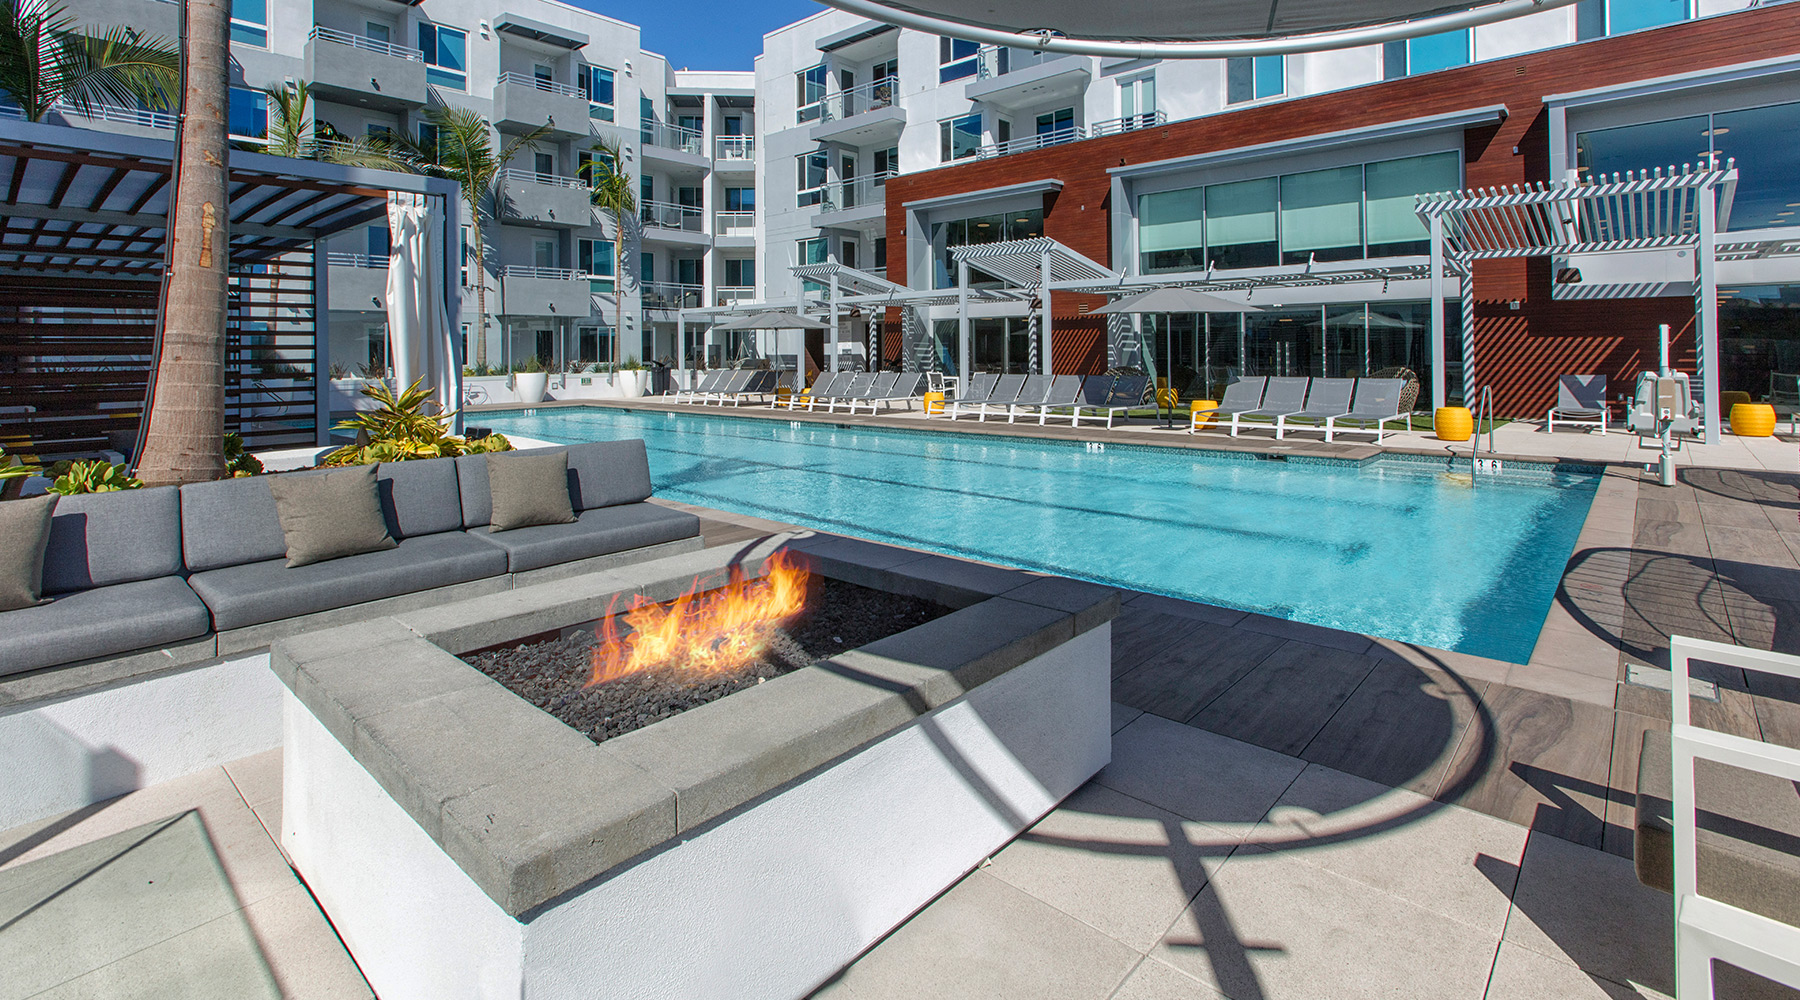 The Royce - Saltwater Pool & Fire Pits